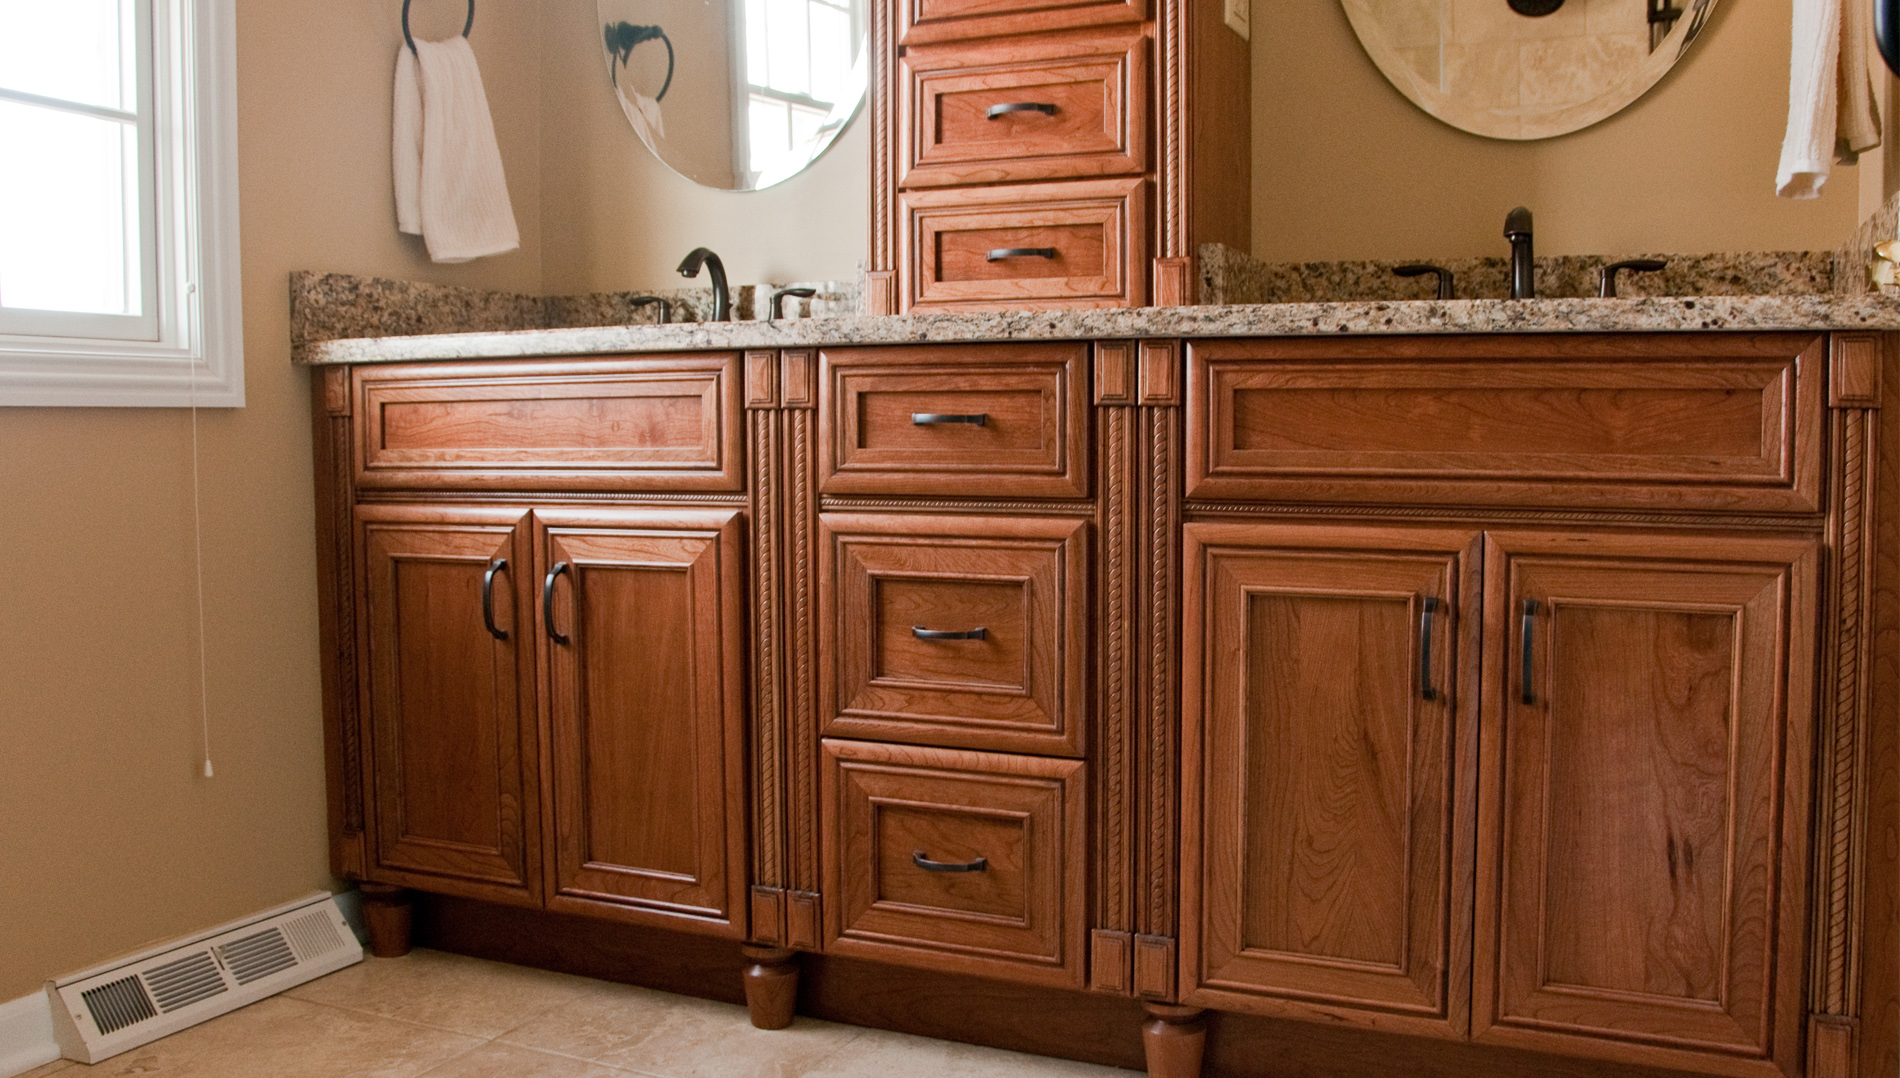 Custom Bathroom Cabinets Online Related Keywords Suggestions Custom B